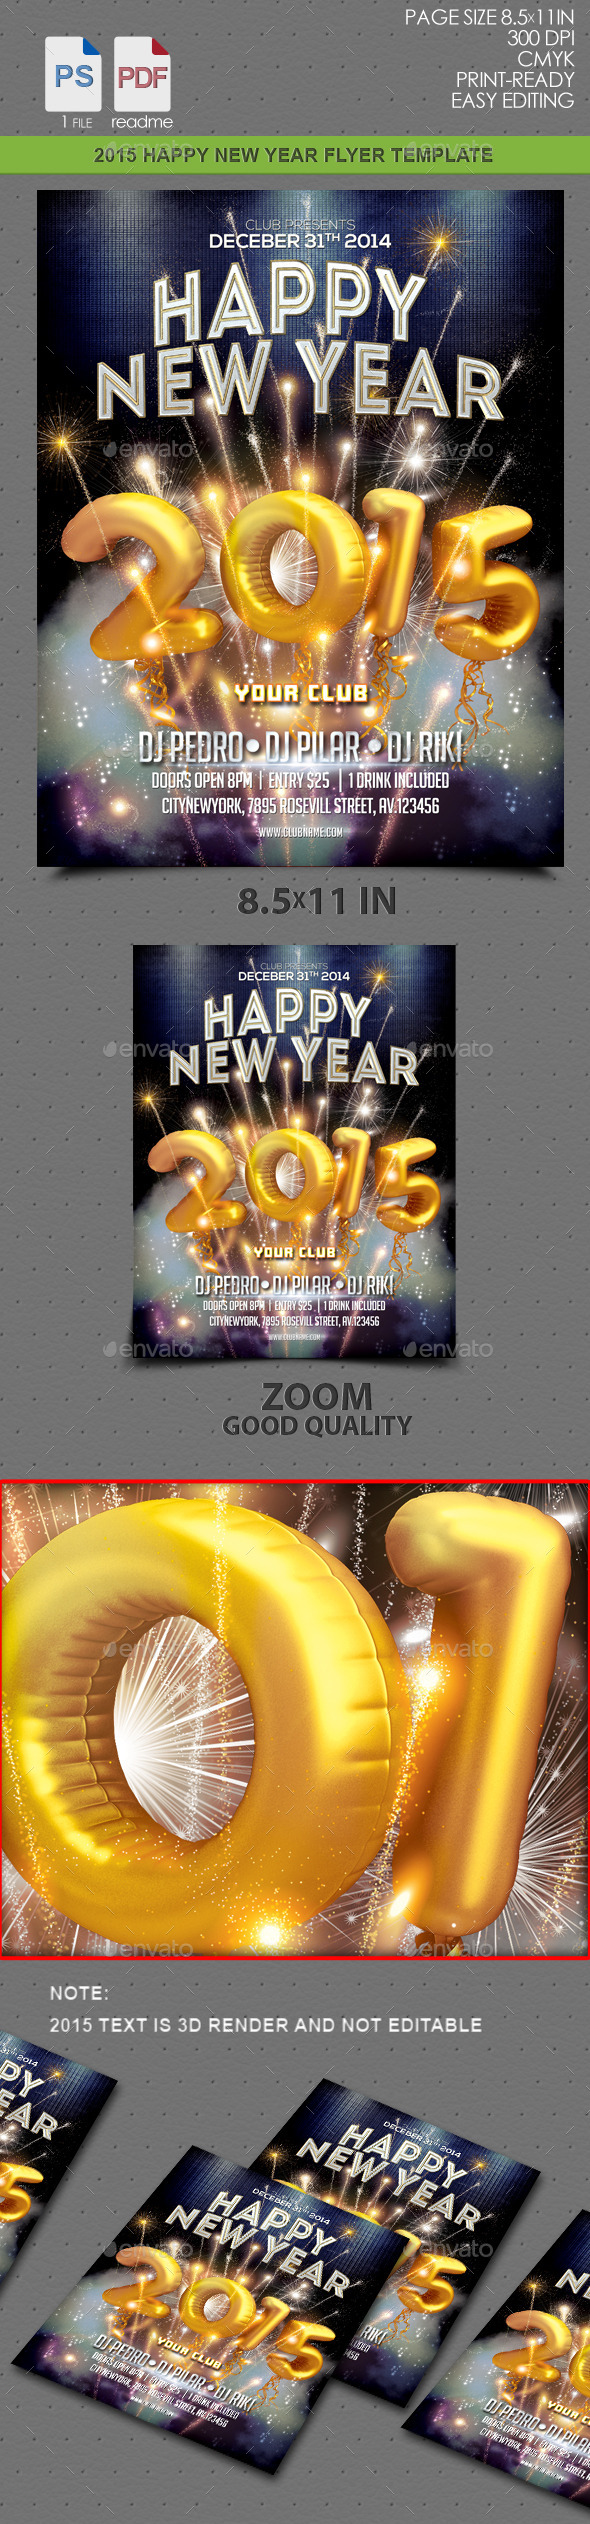 GraphicRiver 2015 HAPPY NEW YEAR FLYER 9469974